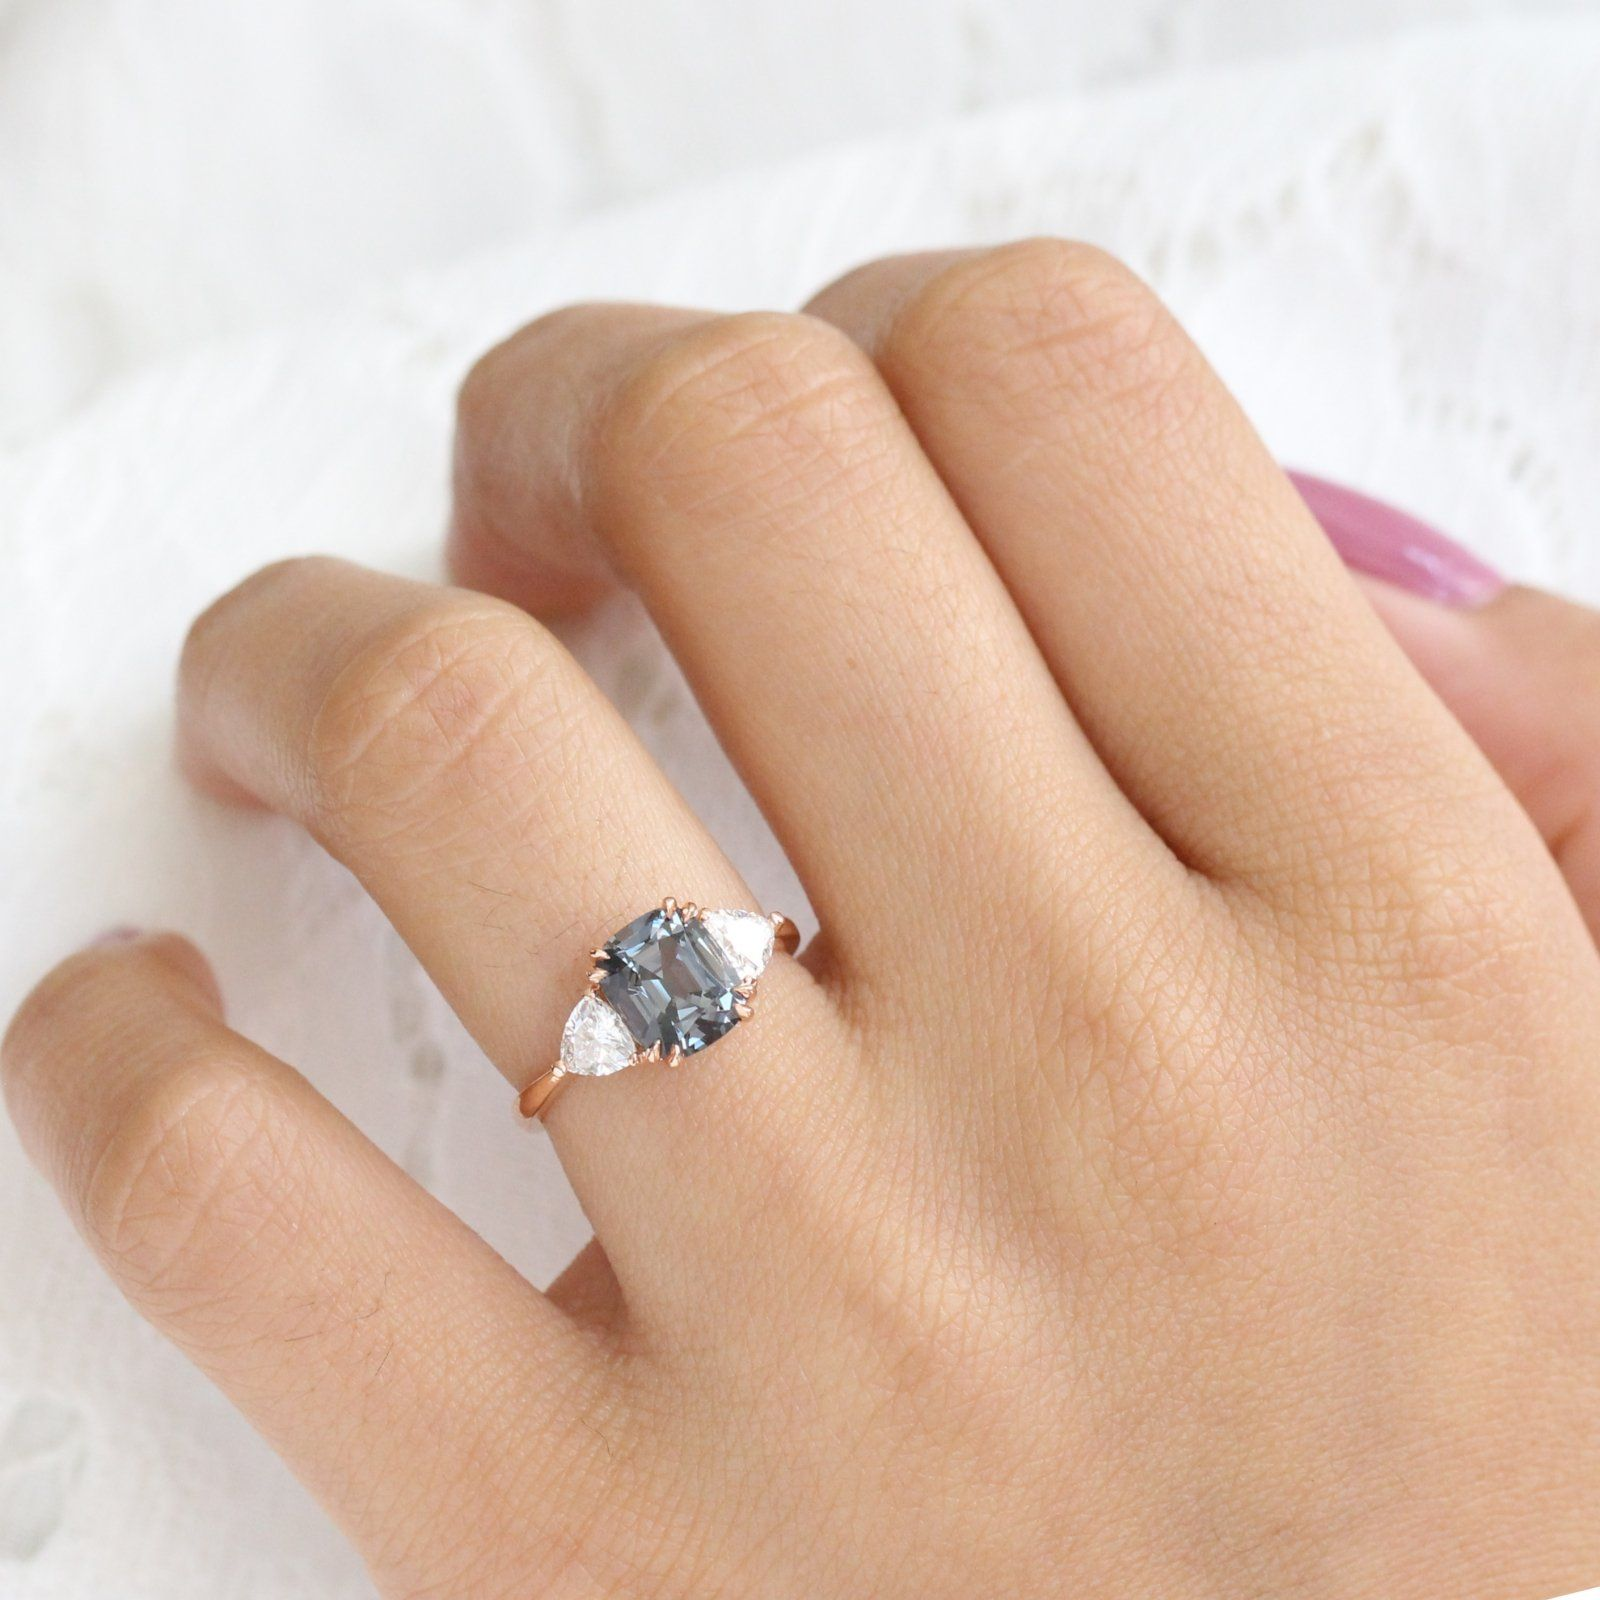 Large Grey Spinel Engagement Ring in 14k Rose Gold 3 Stone